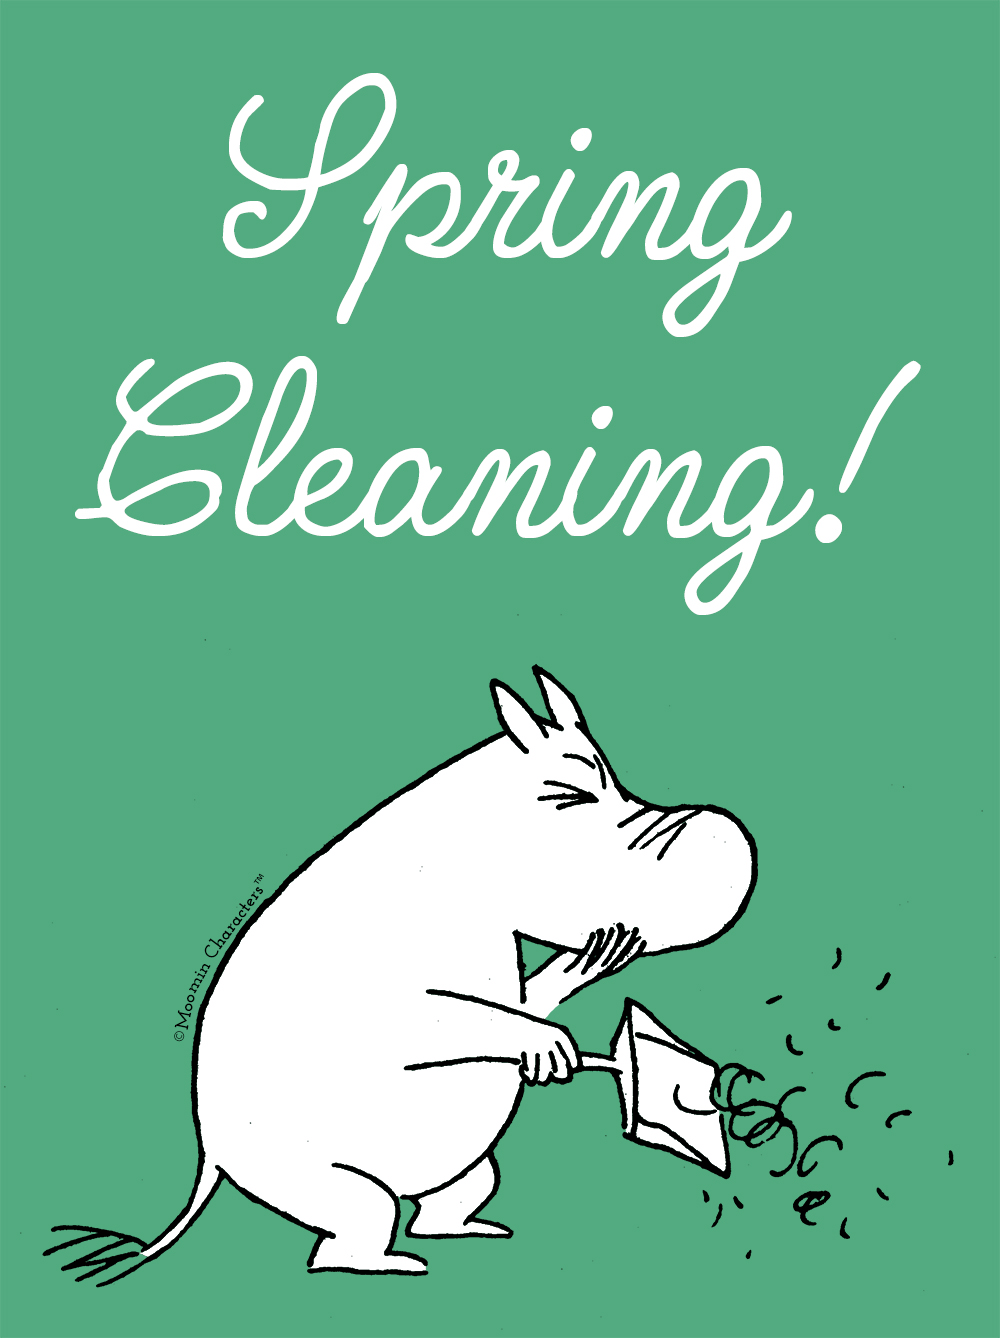 Spring cleaning with Moomin - Moomin